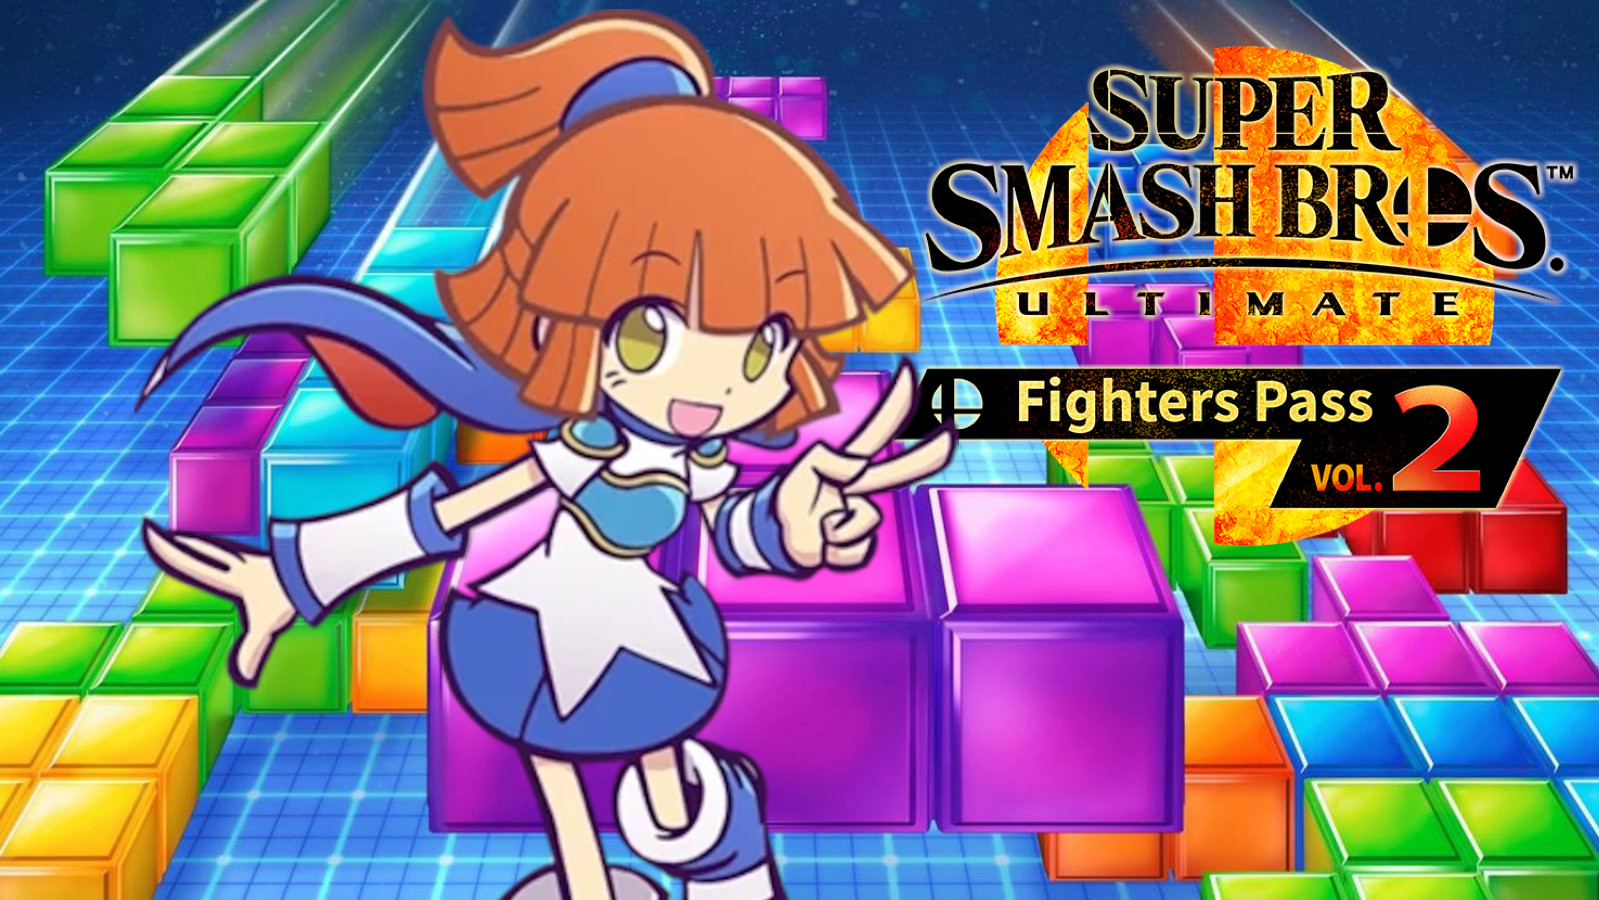 Arle from Puyo Puyo and Tetris in Smash Ultimate